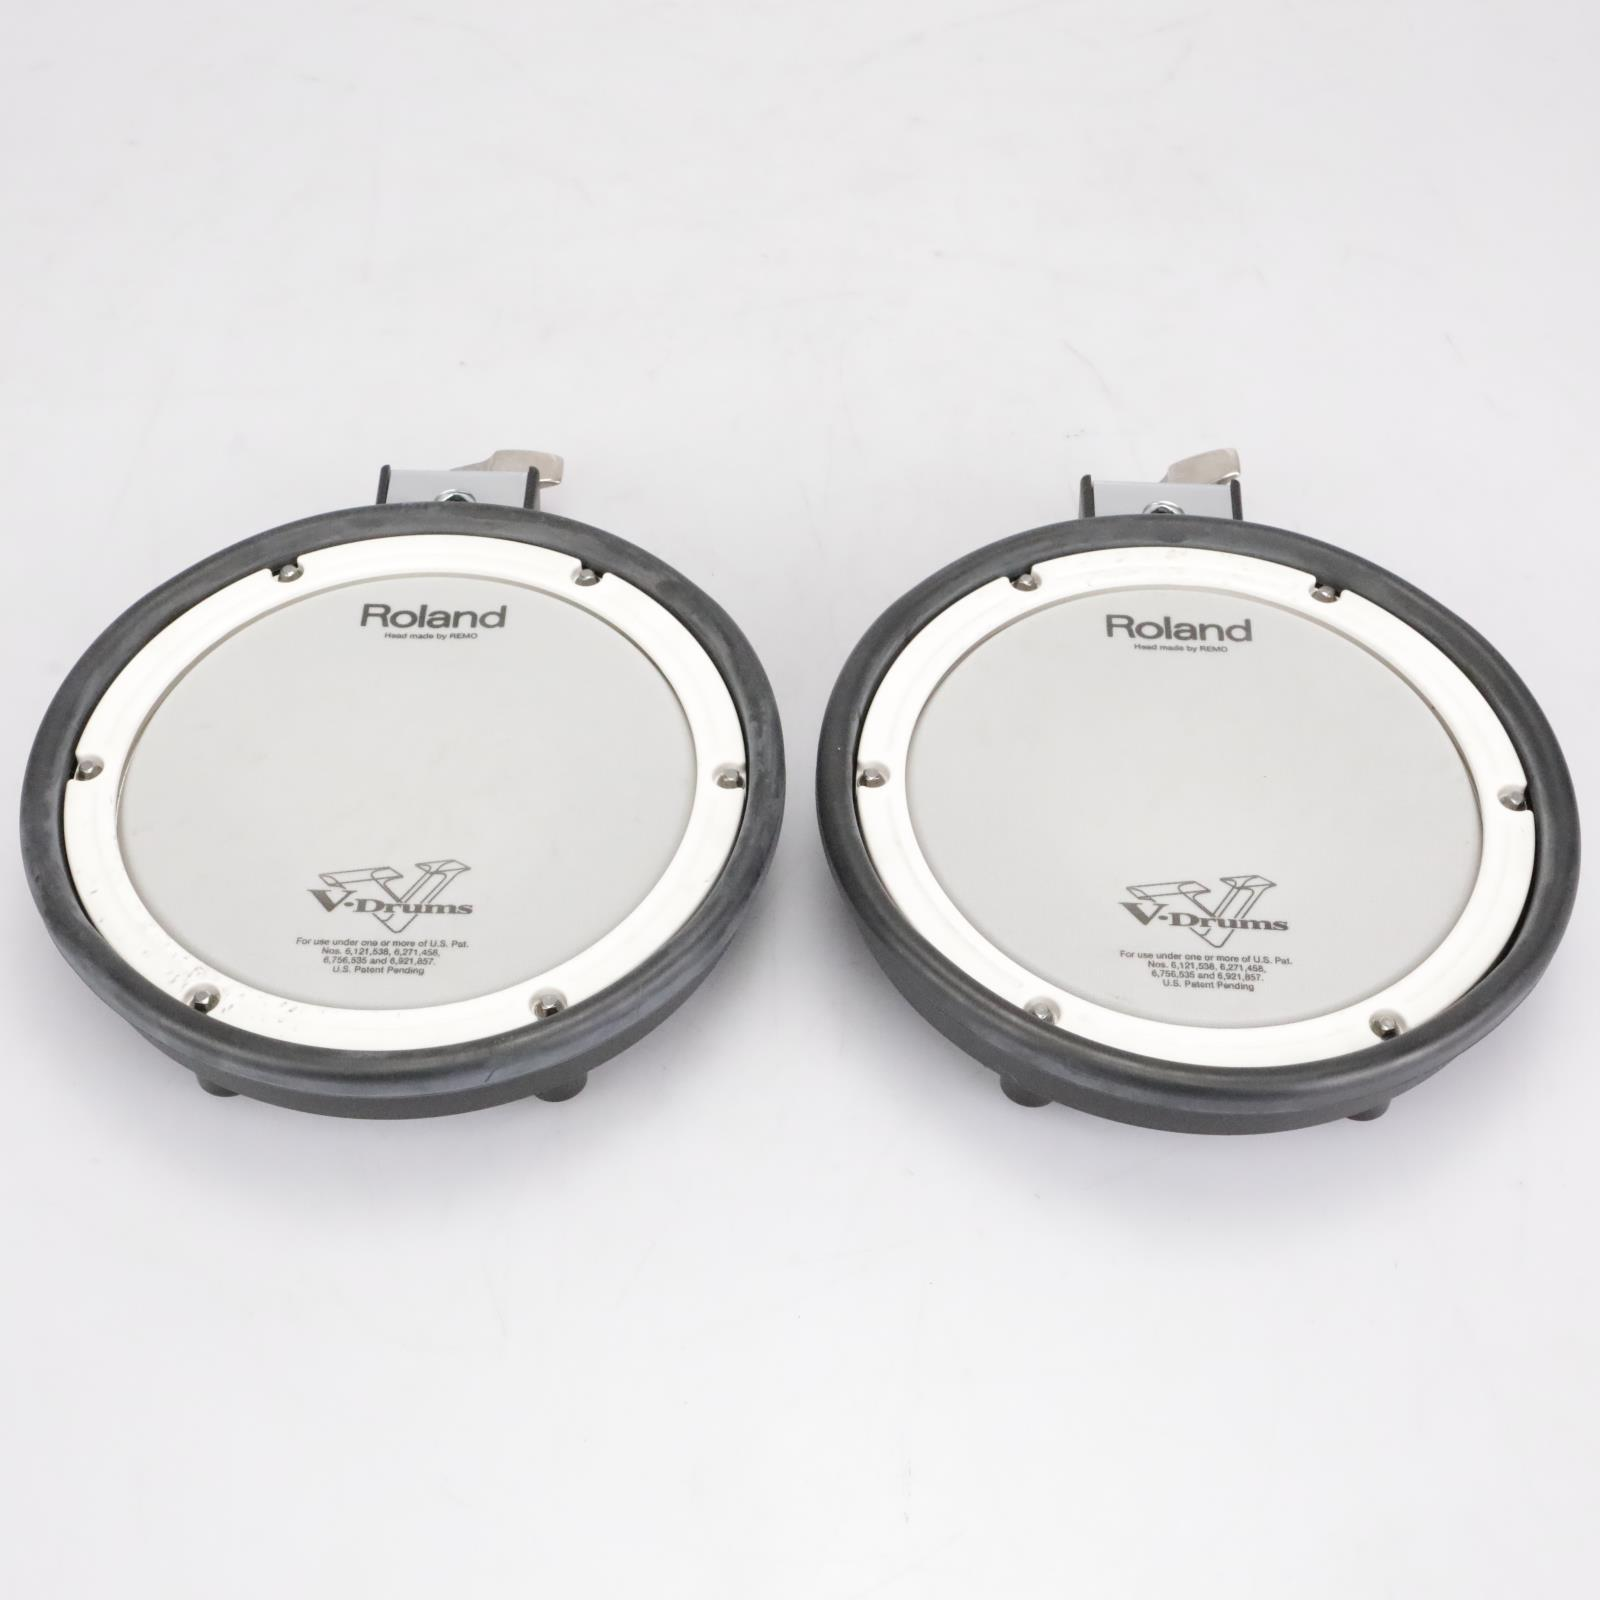 2 Roland PDX-8 V-Drums Dual Triggered Electric Drum Pads #41807